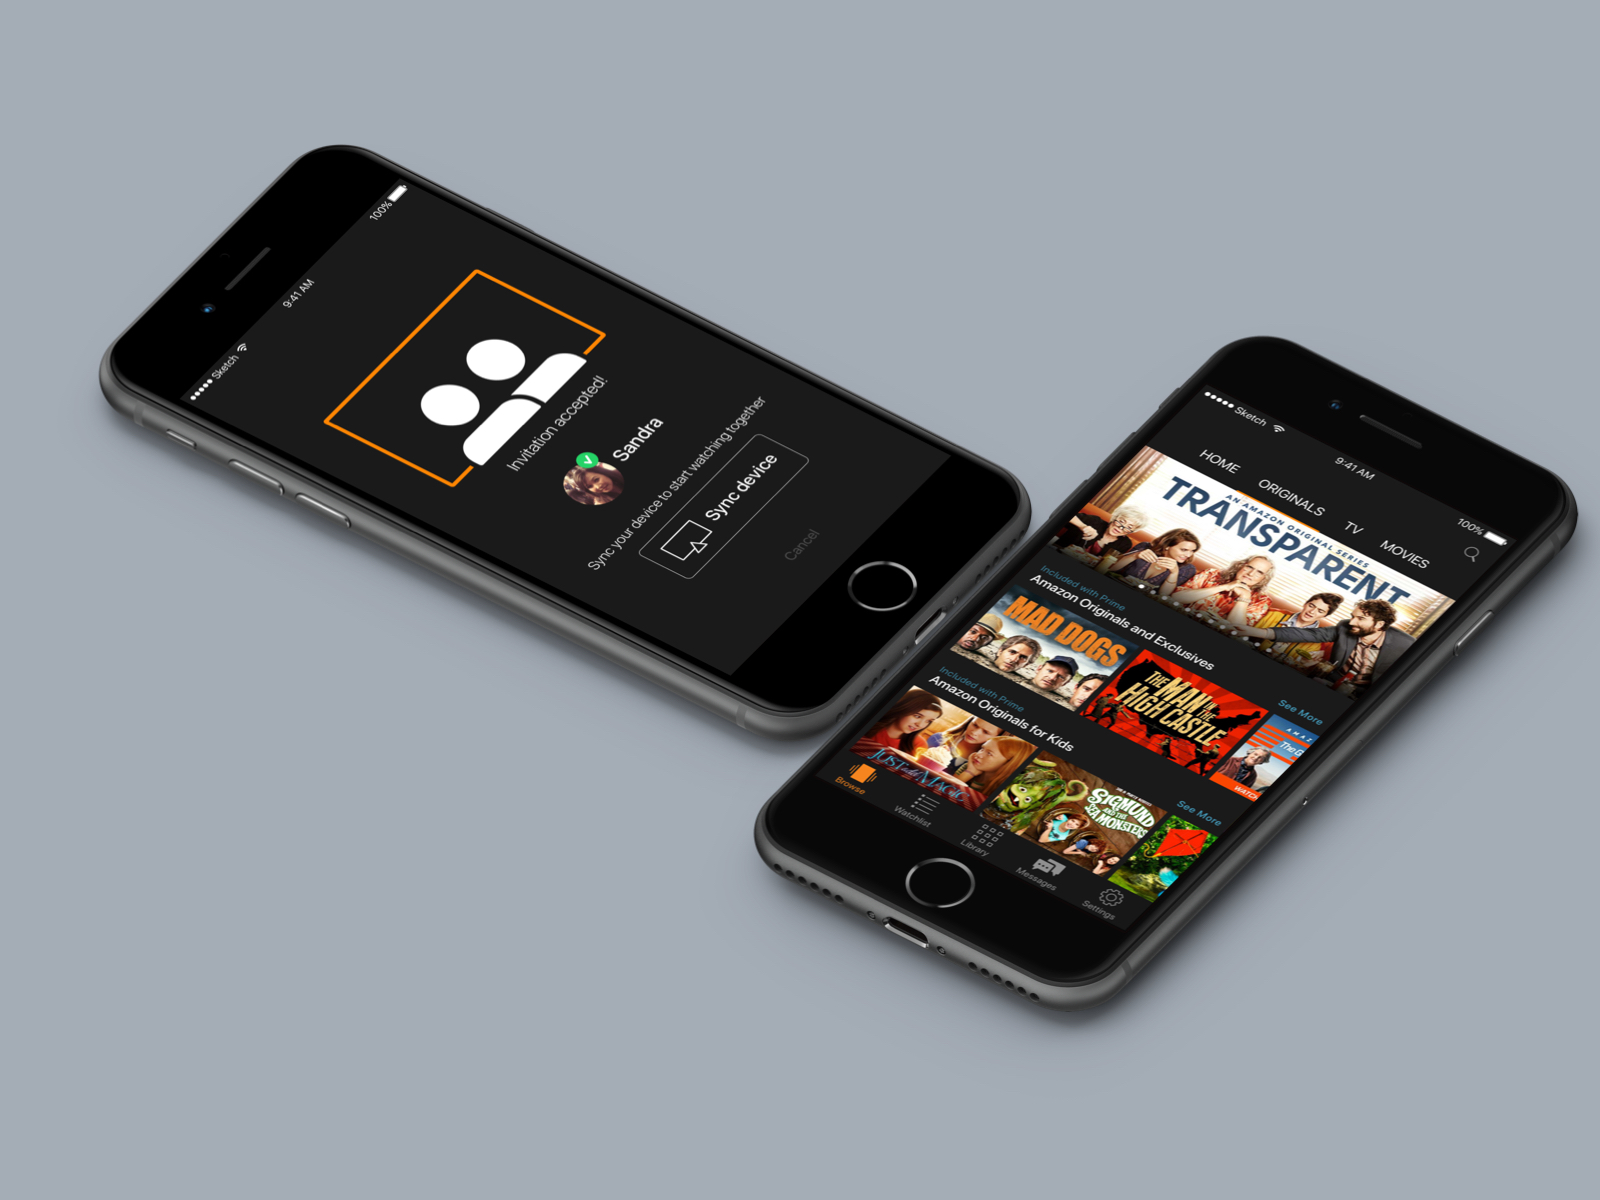 Amazon Mobile & App Design mockups showing the interface